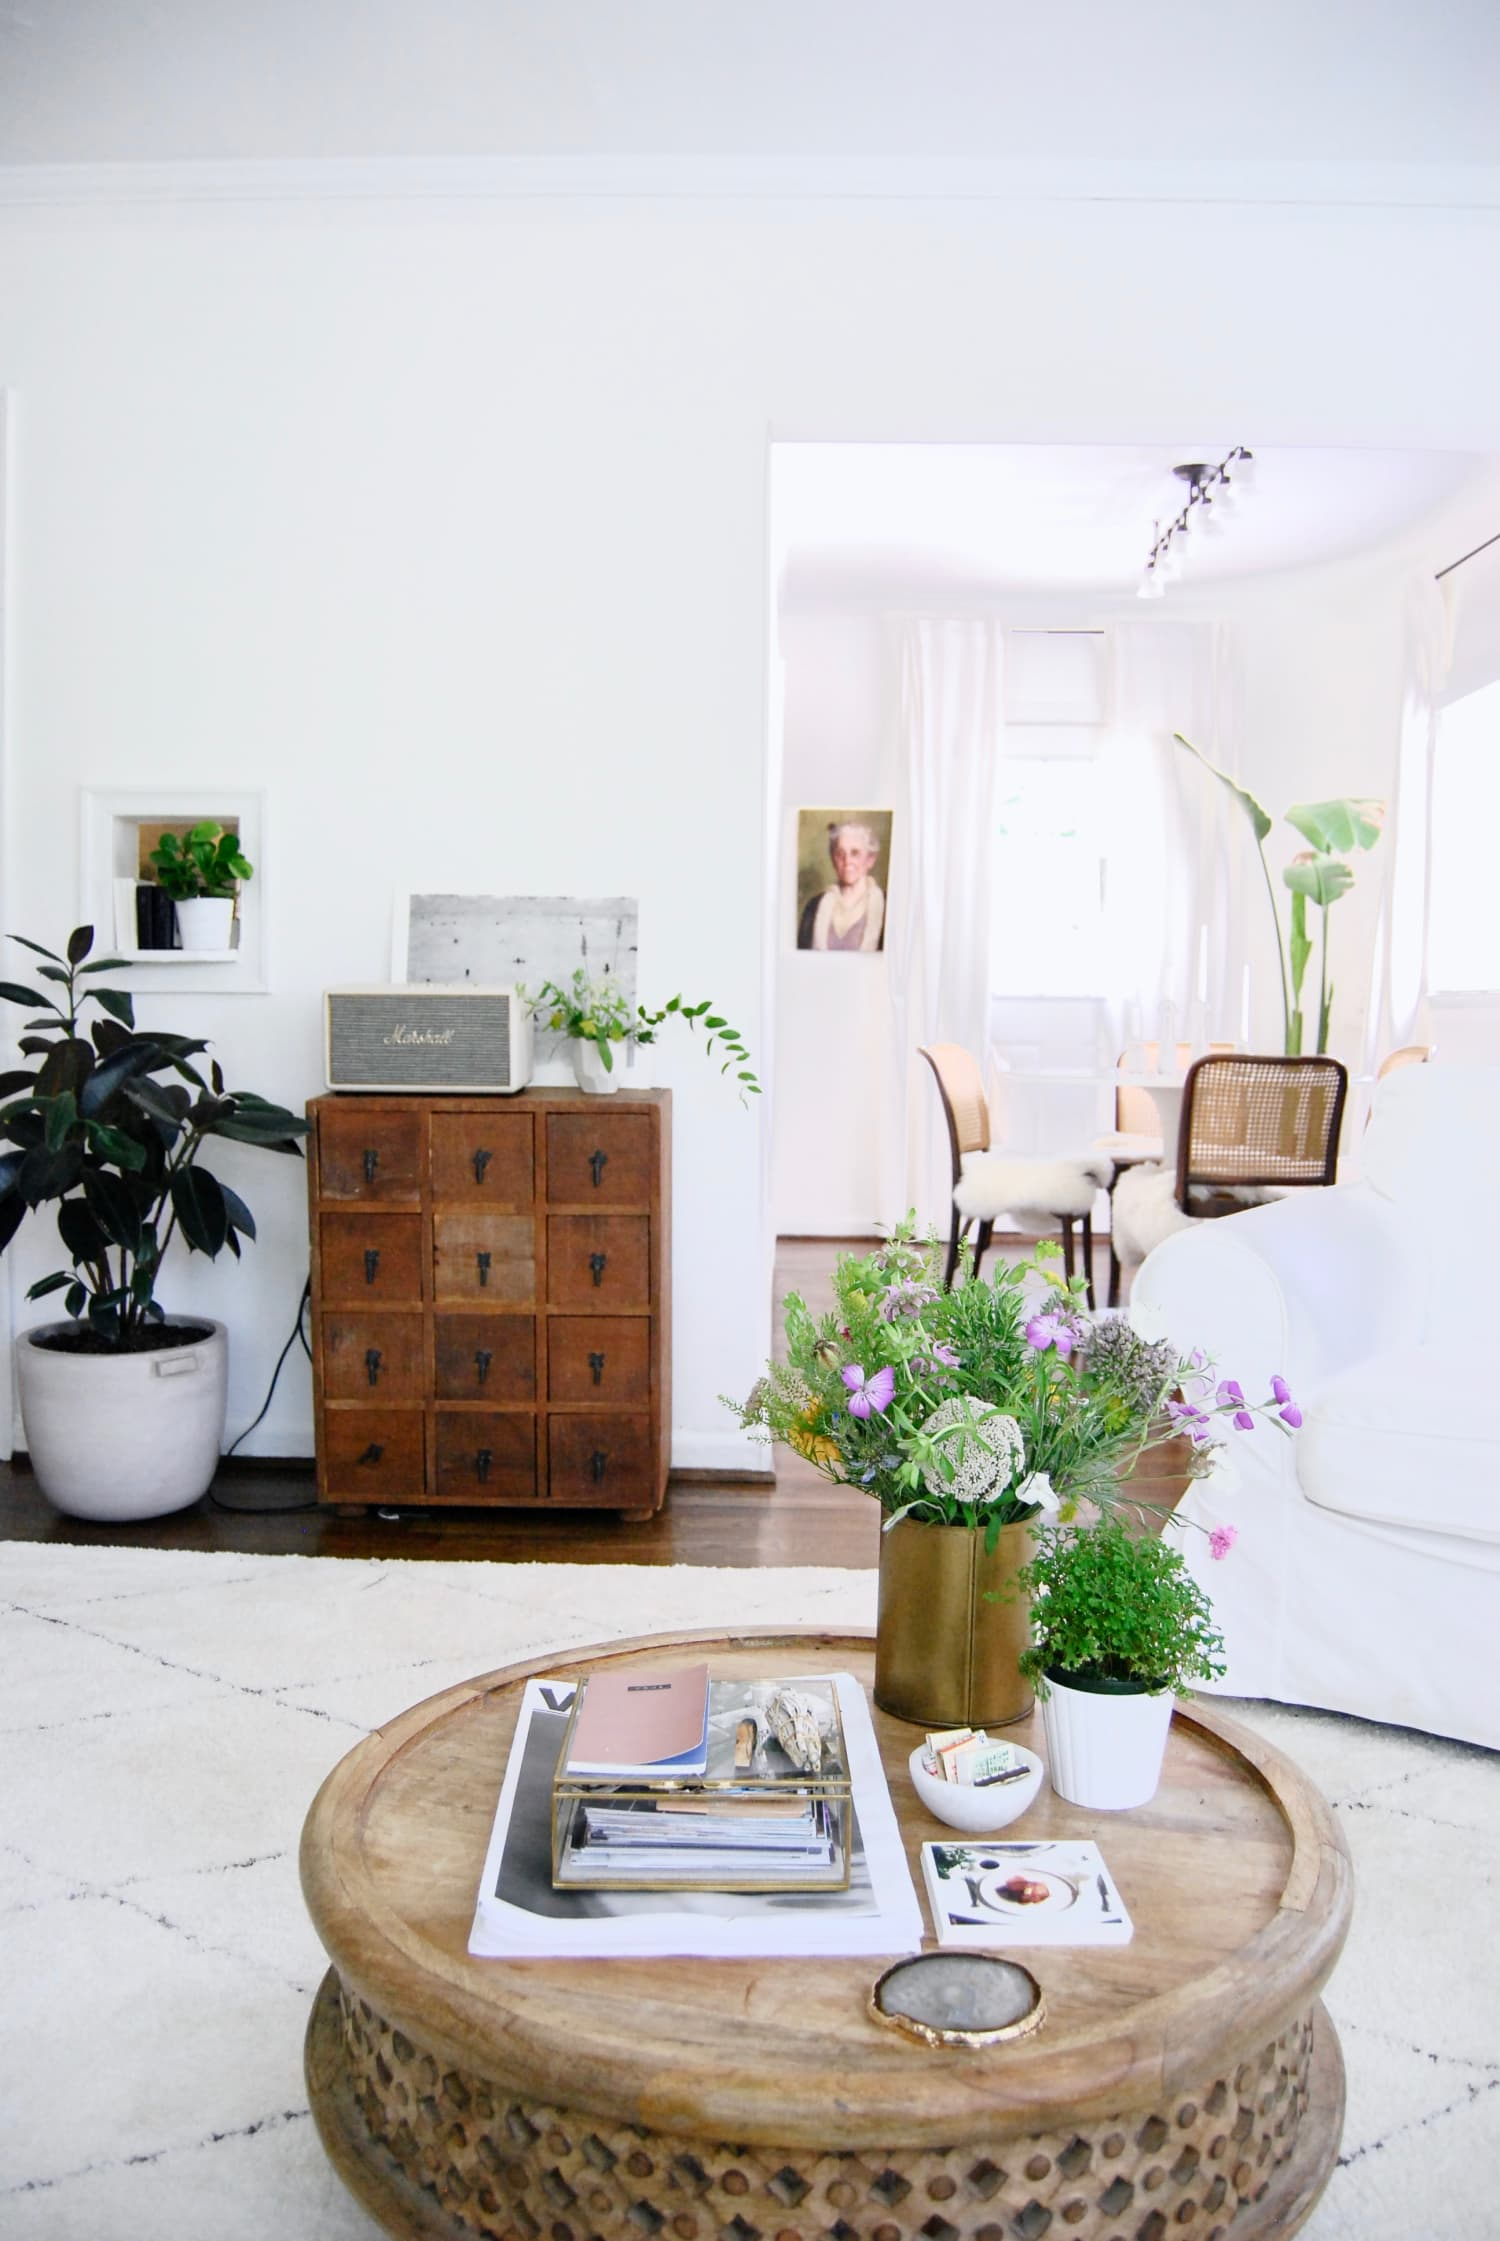 Get the Look: Clean, Classic & Peaceful Living